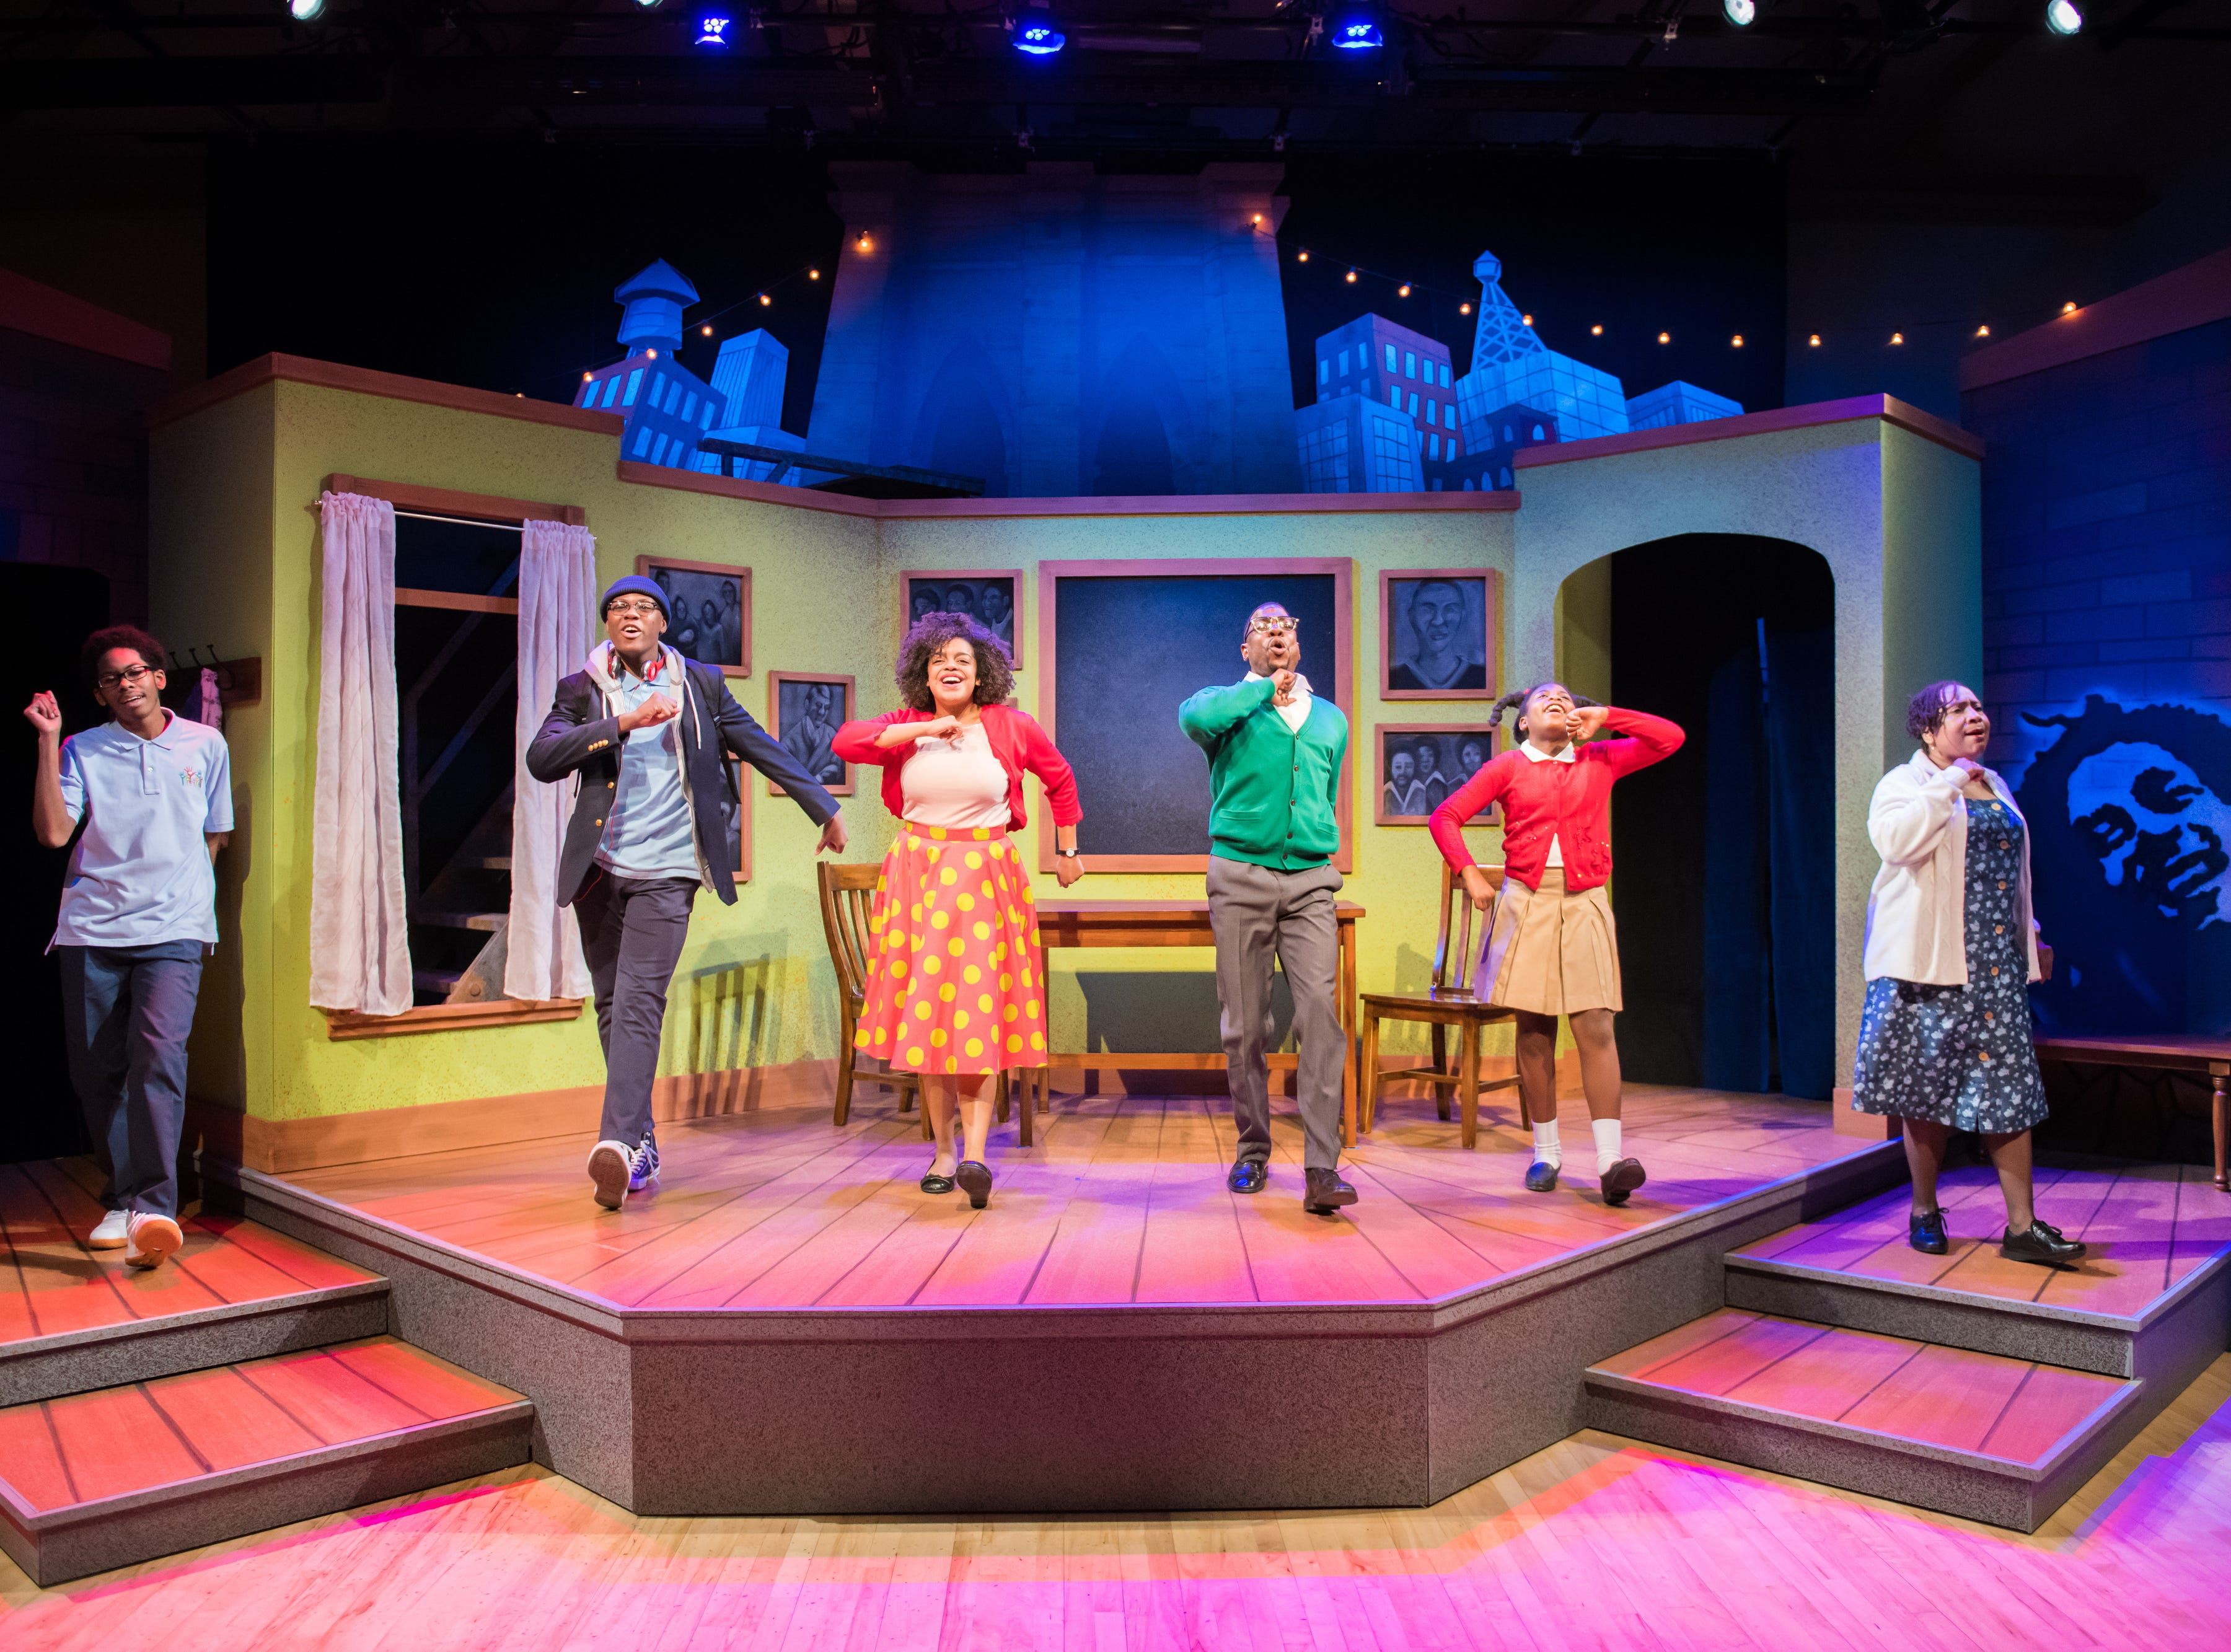 """Derrick Taylor, Kamani Graham, Nadja Simmonds, Ronnel Taylor, Aura Grant and Tosha Freeman perform in First Stage's production of """"Locomotion"""" by Jacqueline Woodson, which continues through Feb. 24 at the Milwaukee Youth Arts Center, 325 W. Walnut St."""